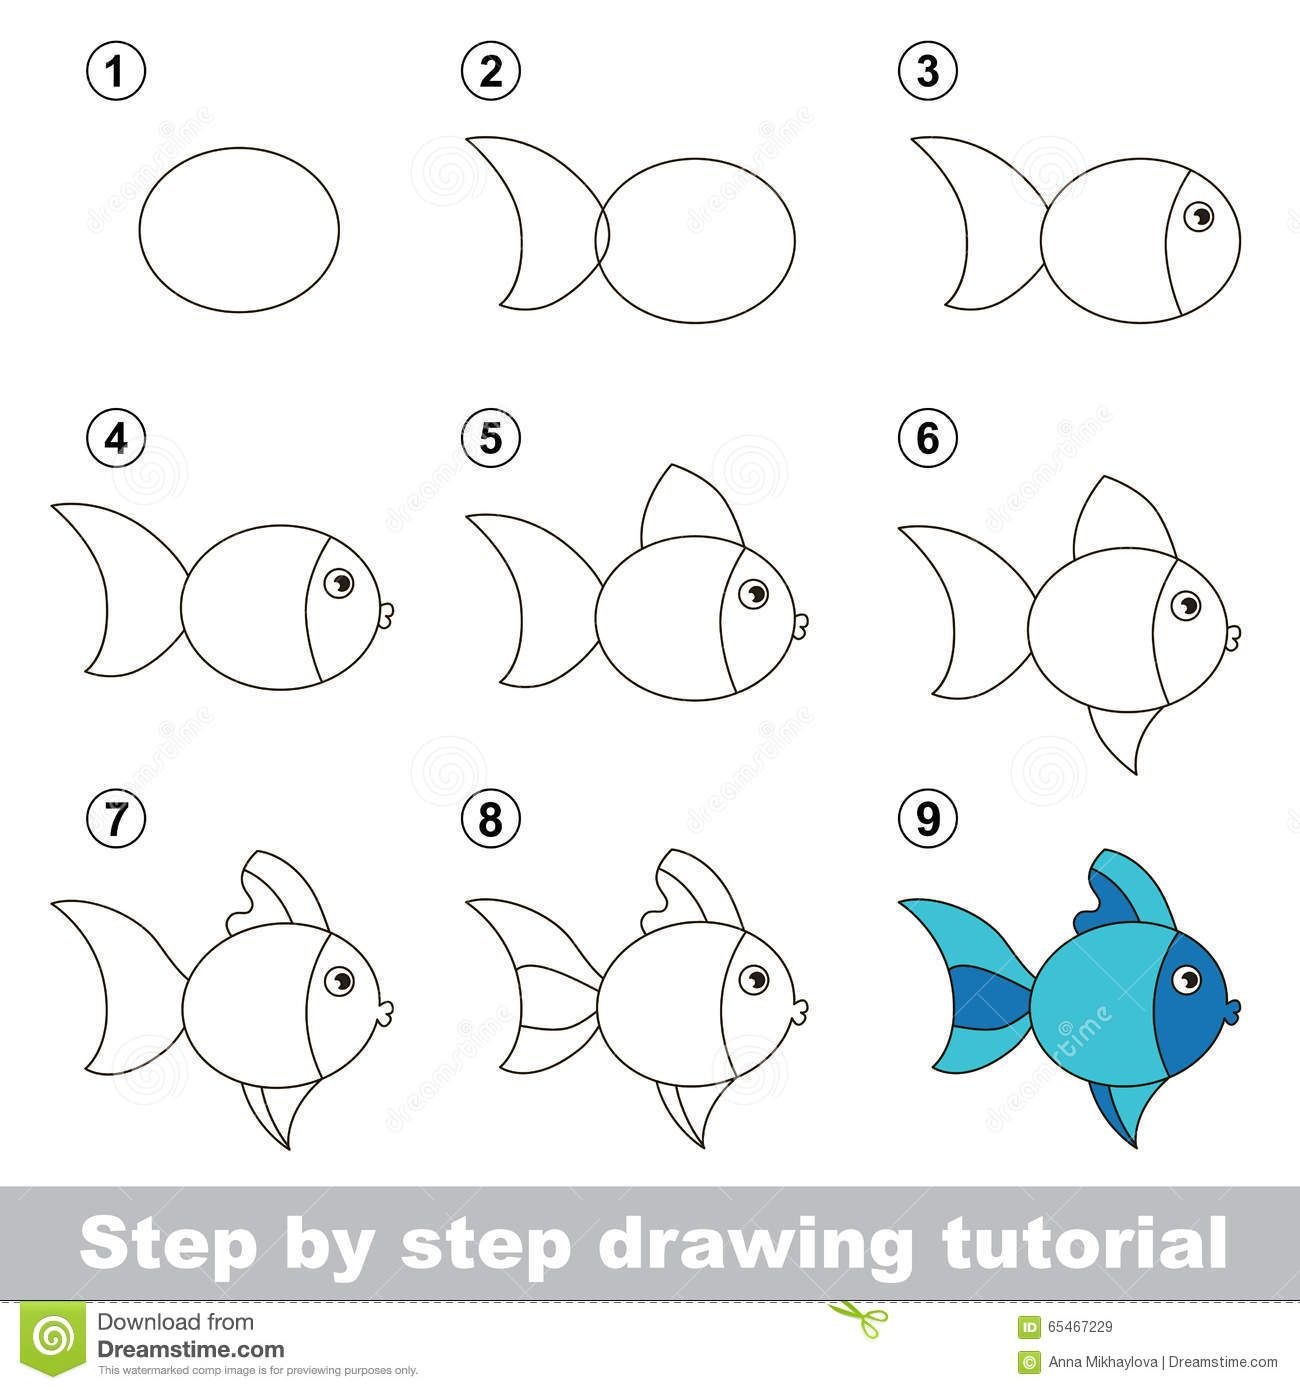 Drawing Tutorial How To Draw Cute Fish Step Step Visual Game Kids 65467229 Jpg 1300 1390 Fish Drawing For Kids Drawing Tutorial Easy Fish Drawing